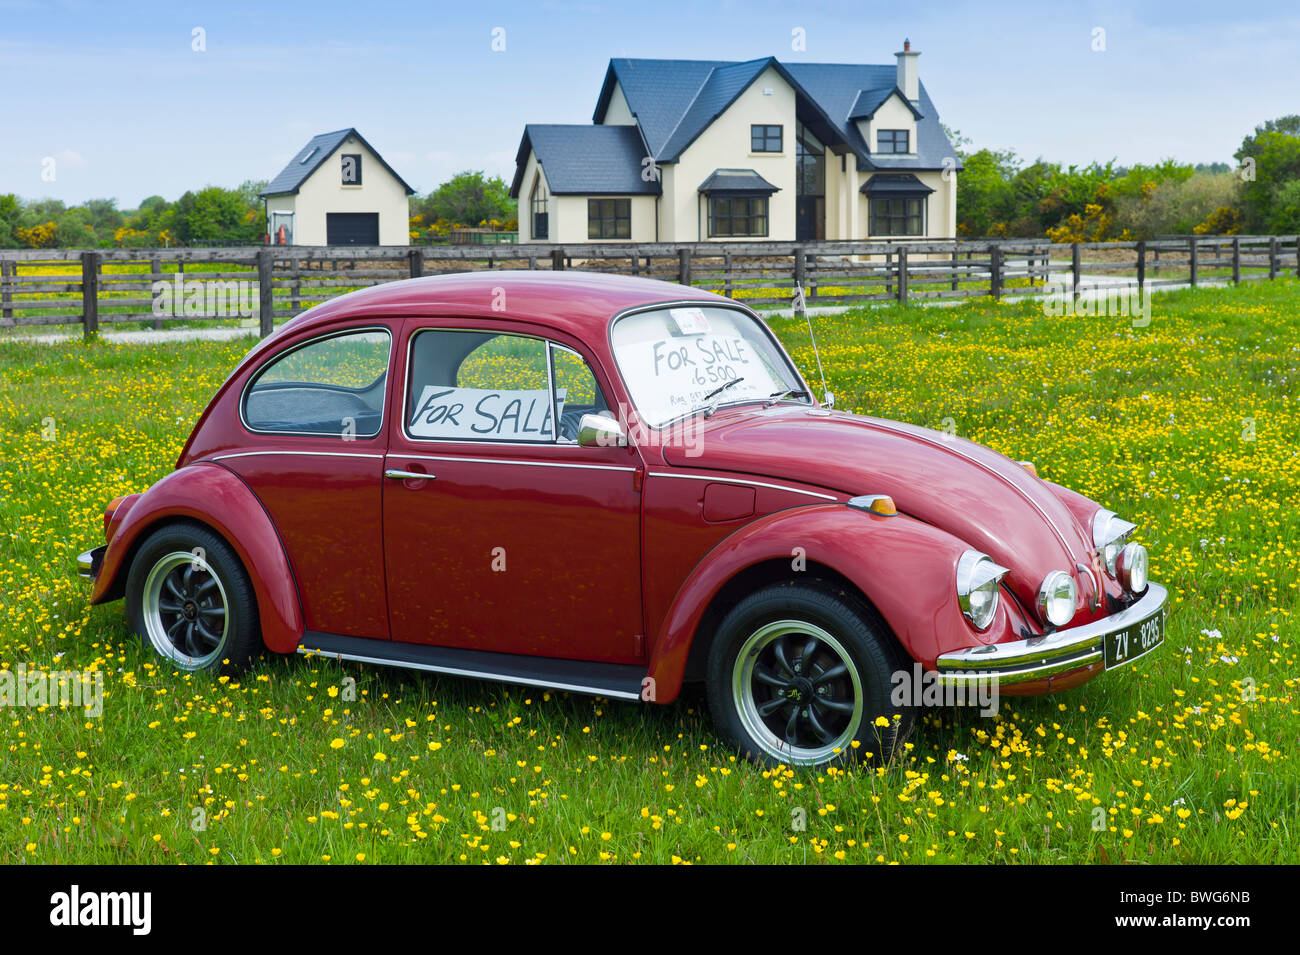 Cars For Sale Uk To Ireland: VW Beetle Car For Sale Outside Irish Home Near Taghmon